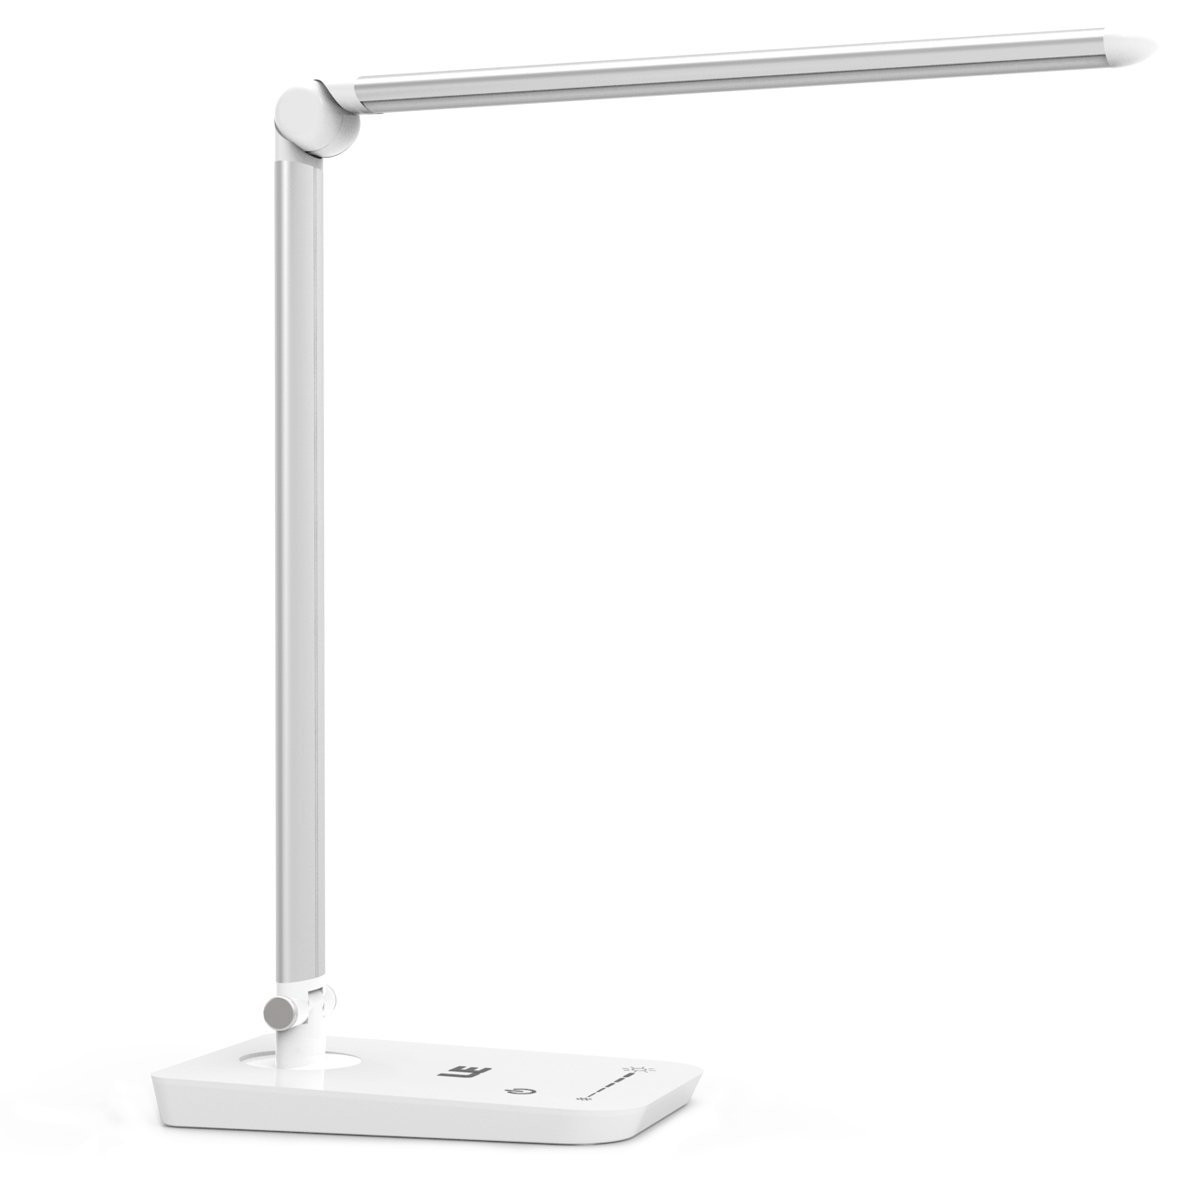 Best ideas about Desk Lamp Led . Save or Pin LE 8W Dimmable Touch Sensitive Desk Lamp 7 Level Now.